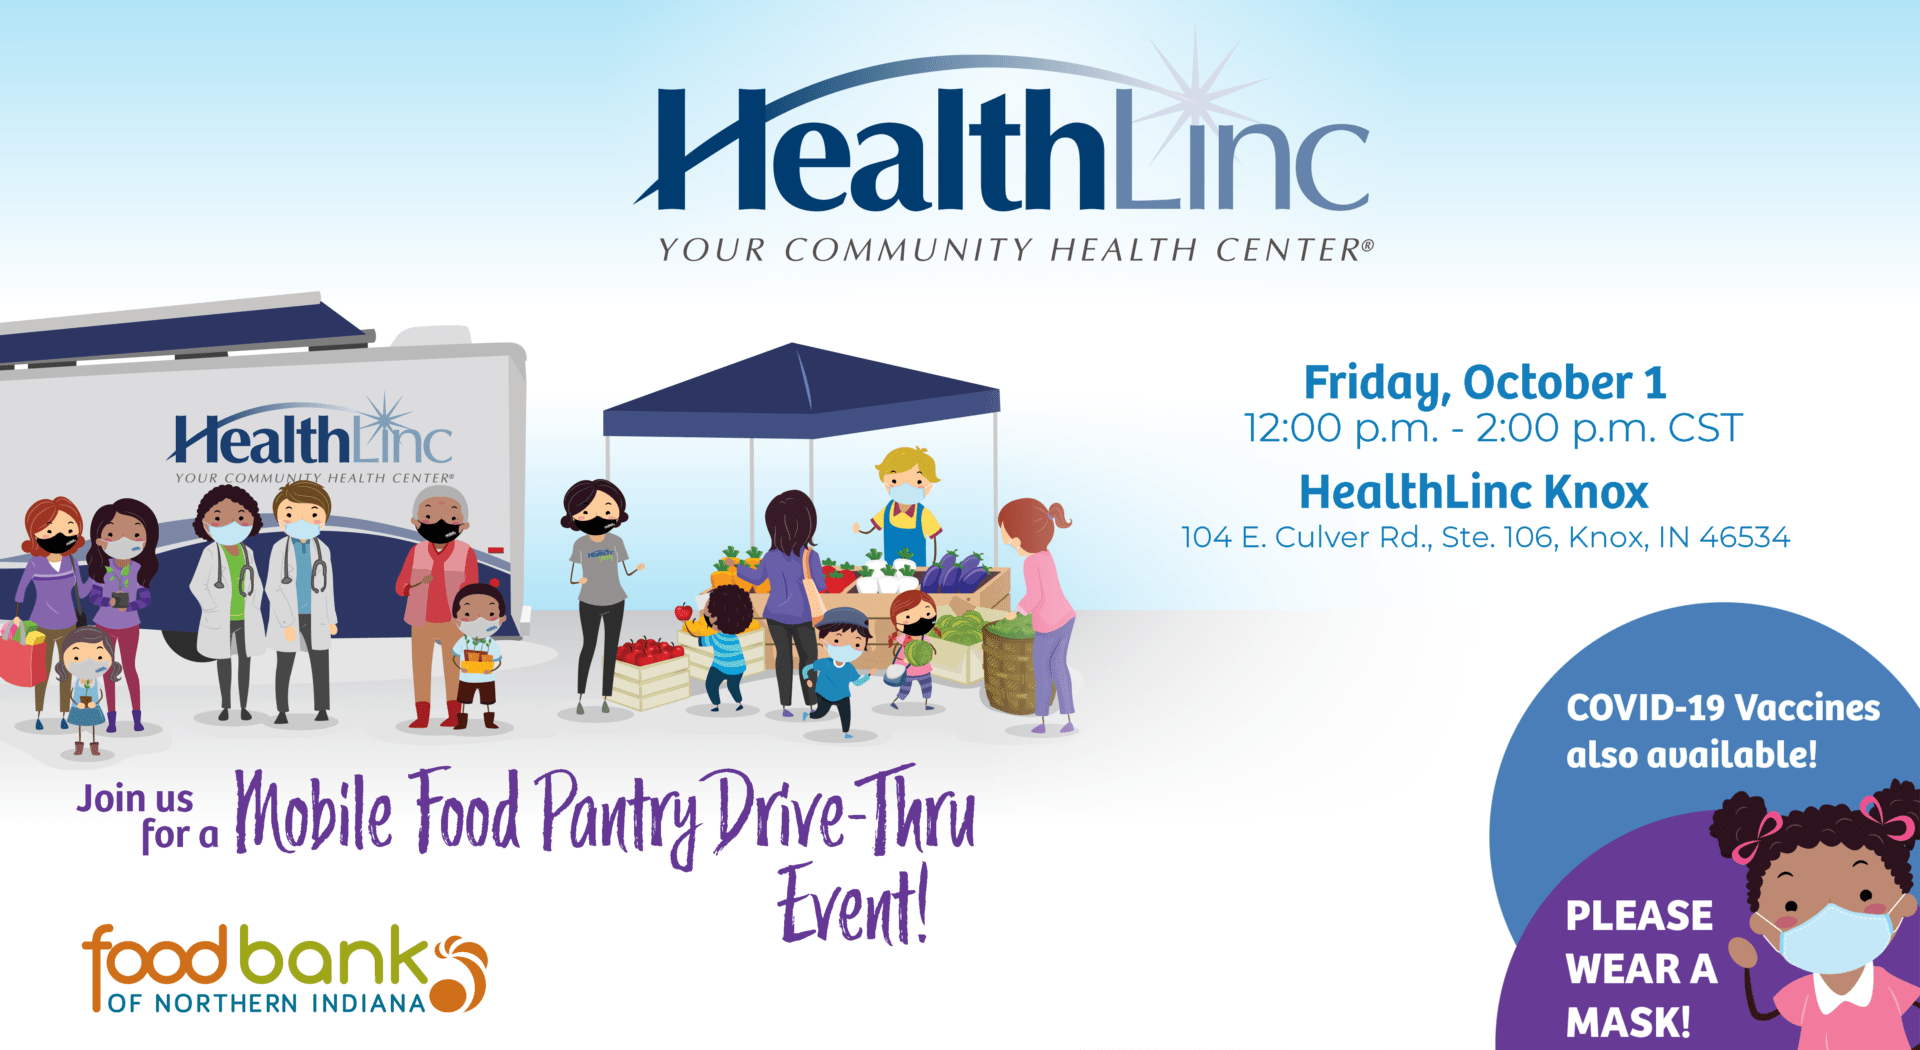 Flyer for the HealthLinc Knox drive-thru mobile food pantry, hosted in part by Food Bank of Northern Indiana.